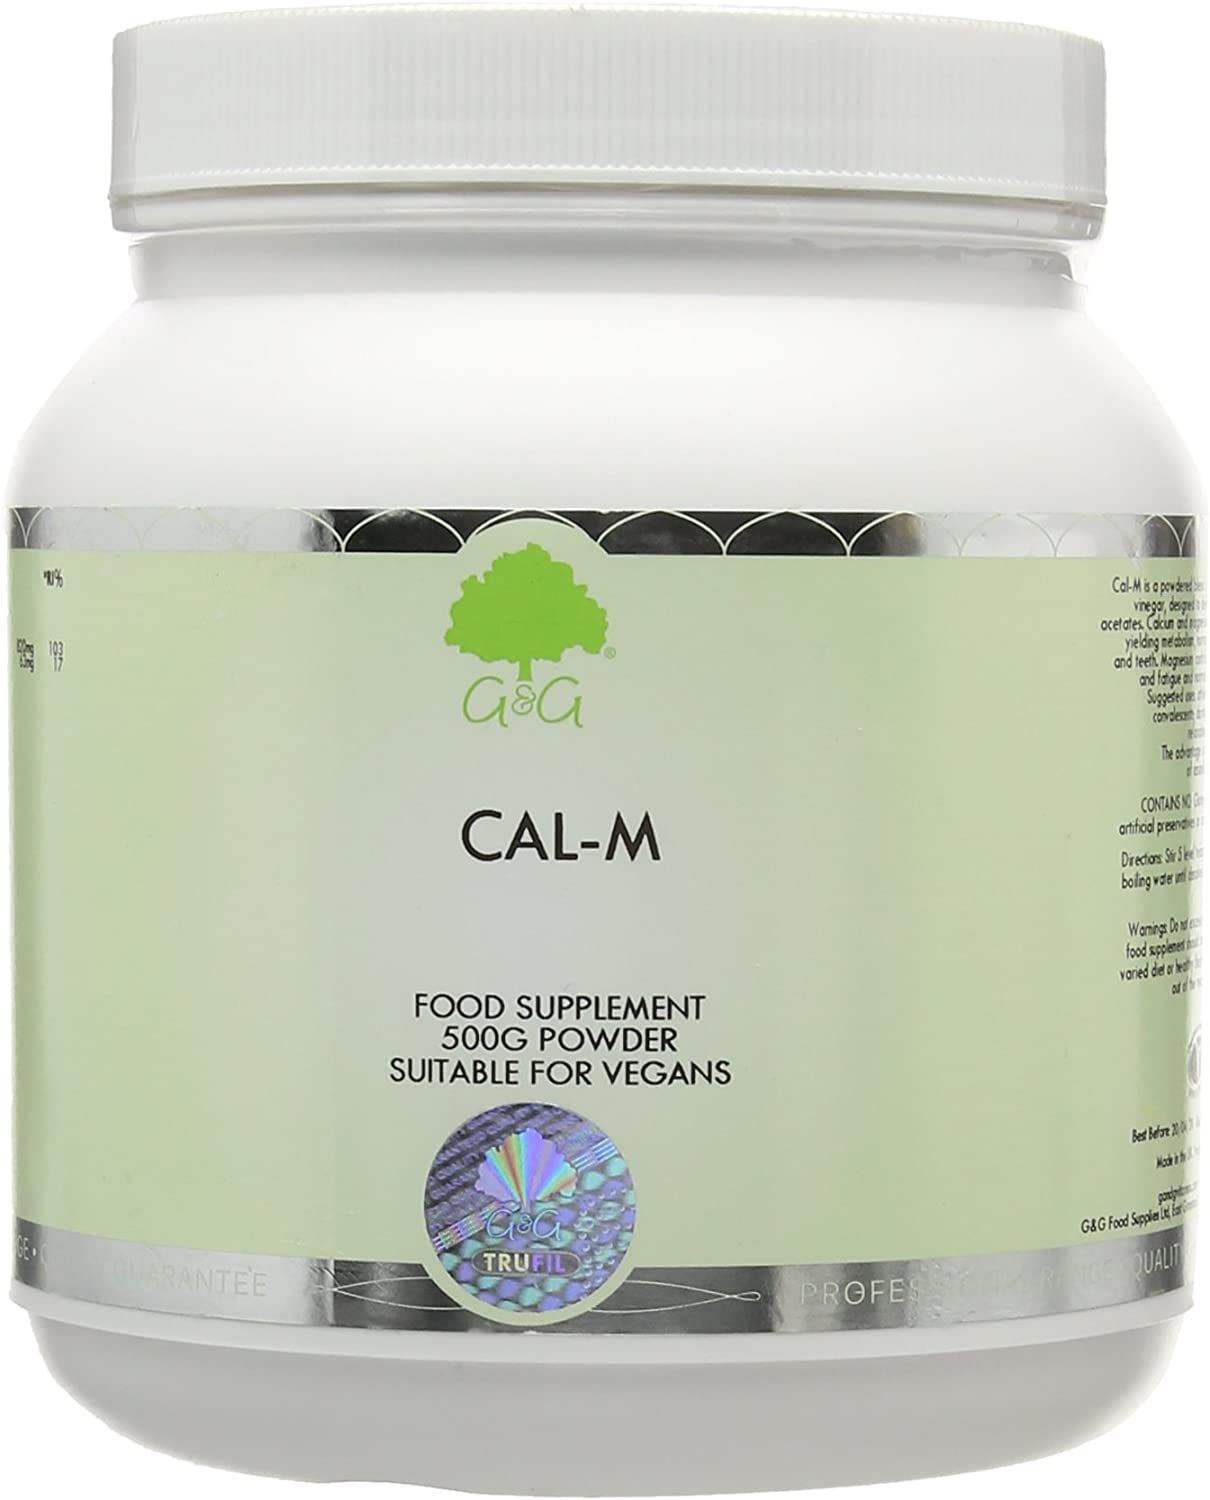 G&G Vitamins 500g Cal-M Powder